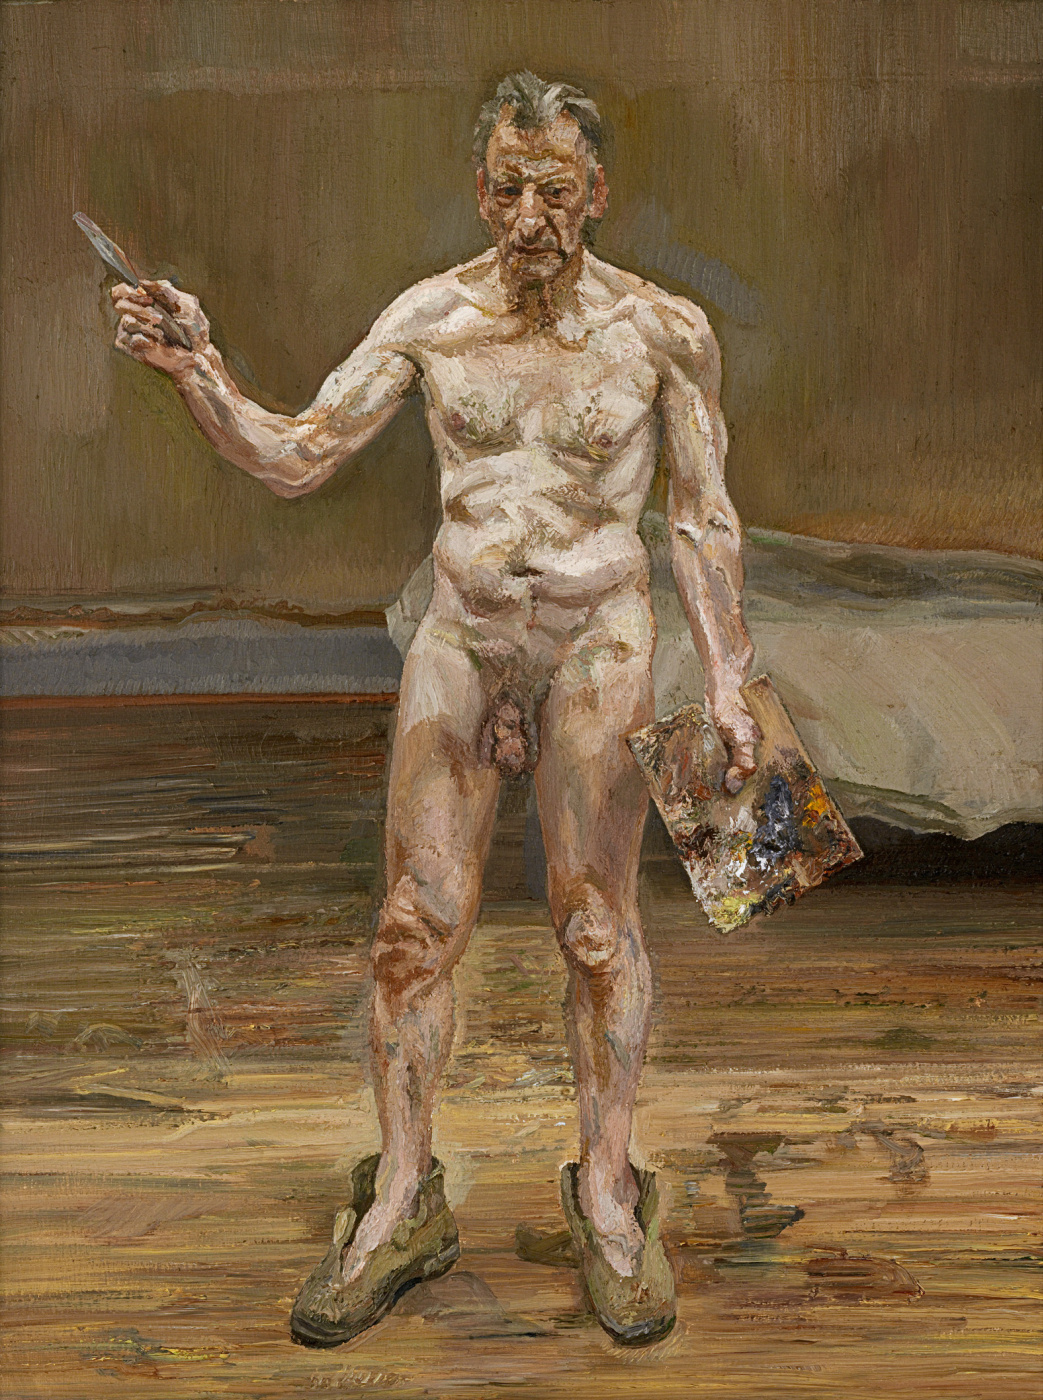 Lucien Freud. Artist at work, reflection